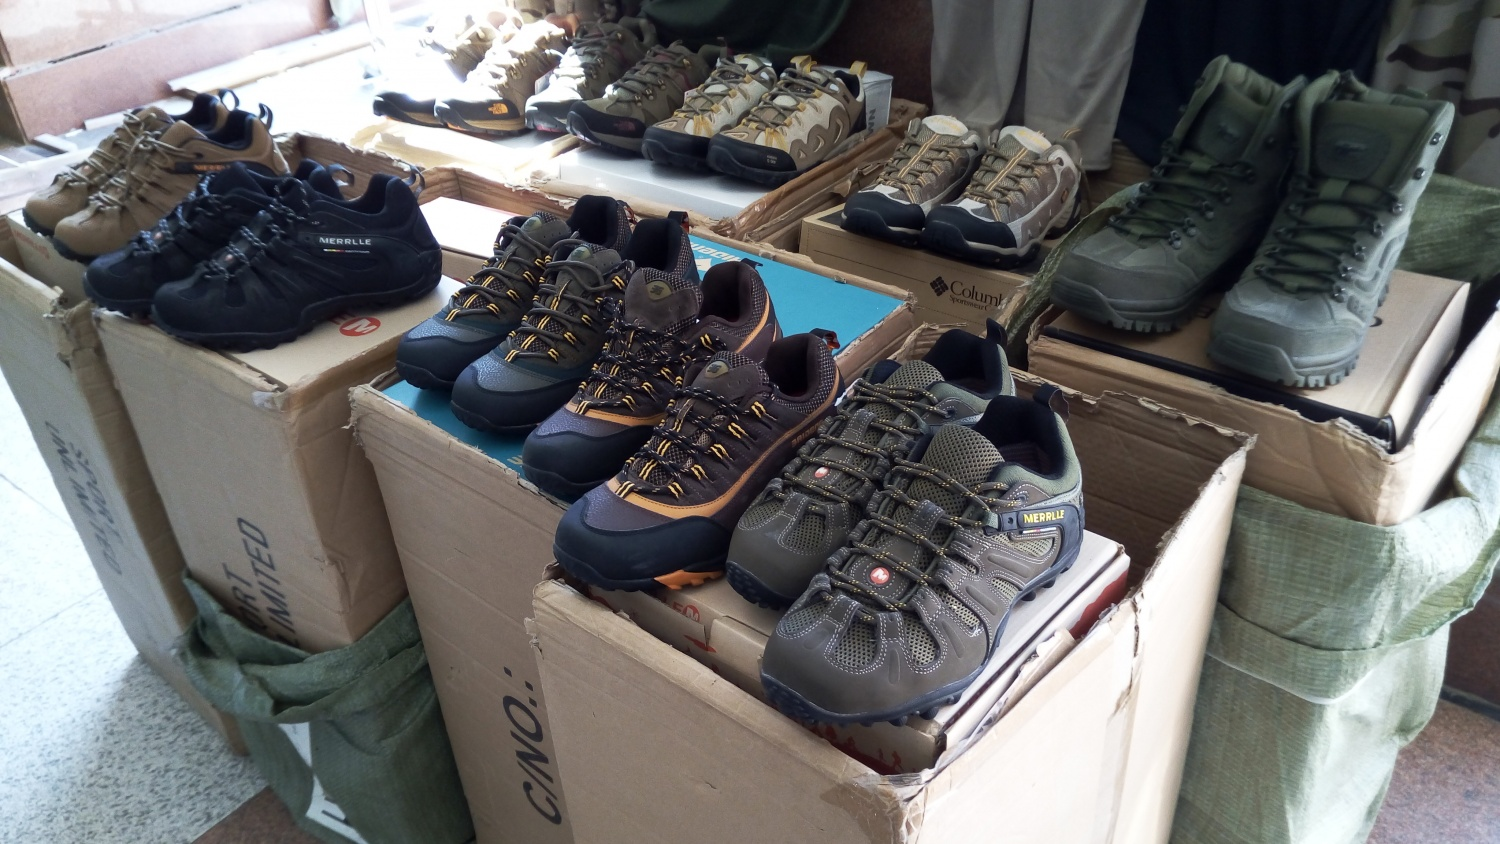 If you need quality footwear, look no further. MERRLE got you covered!